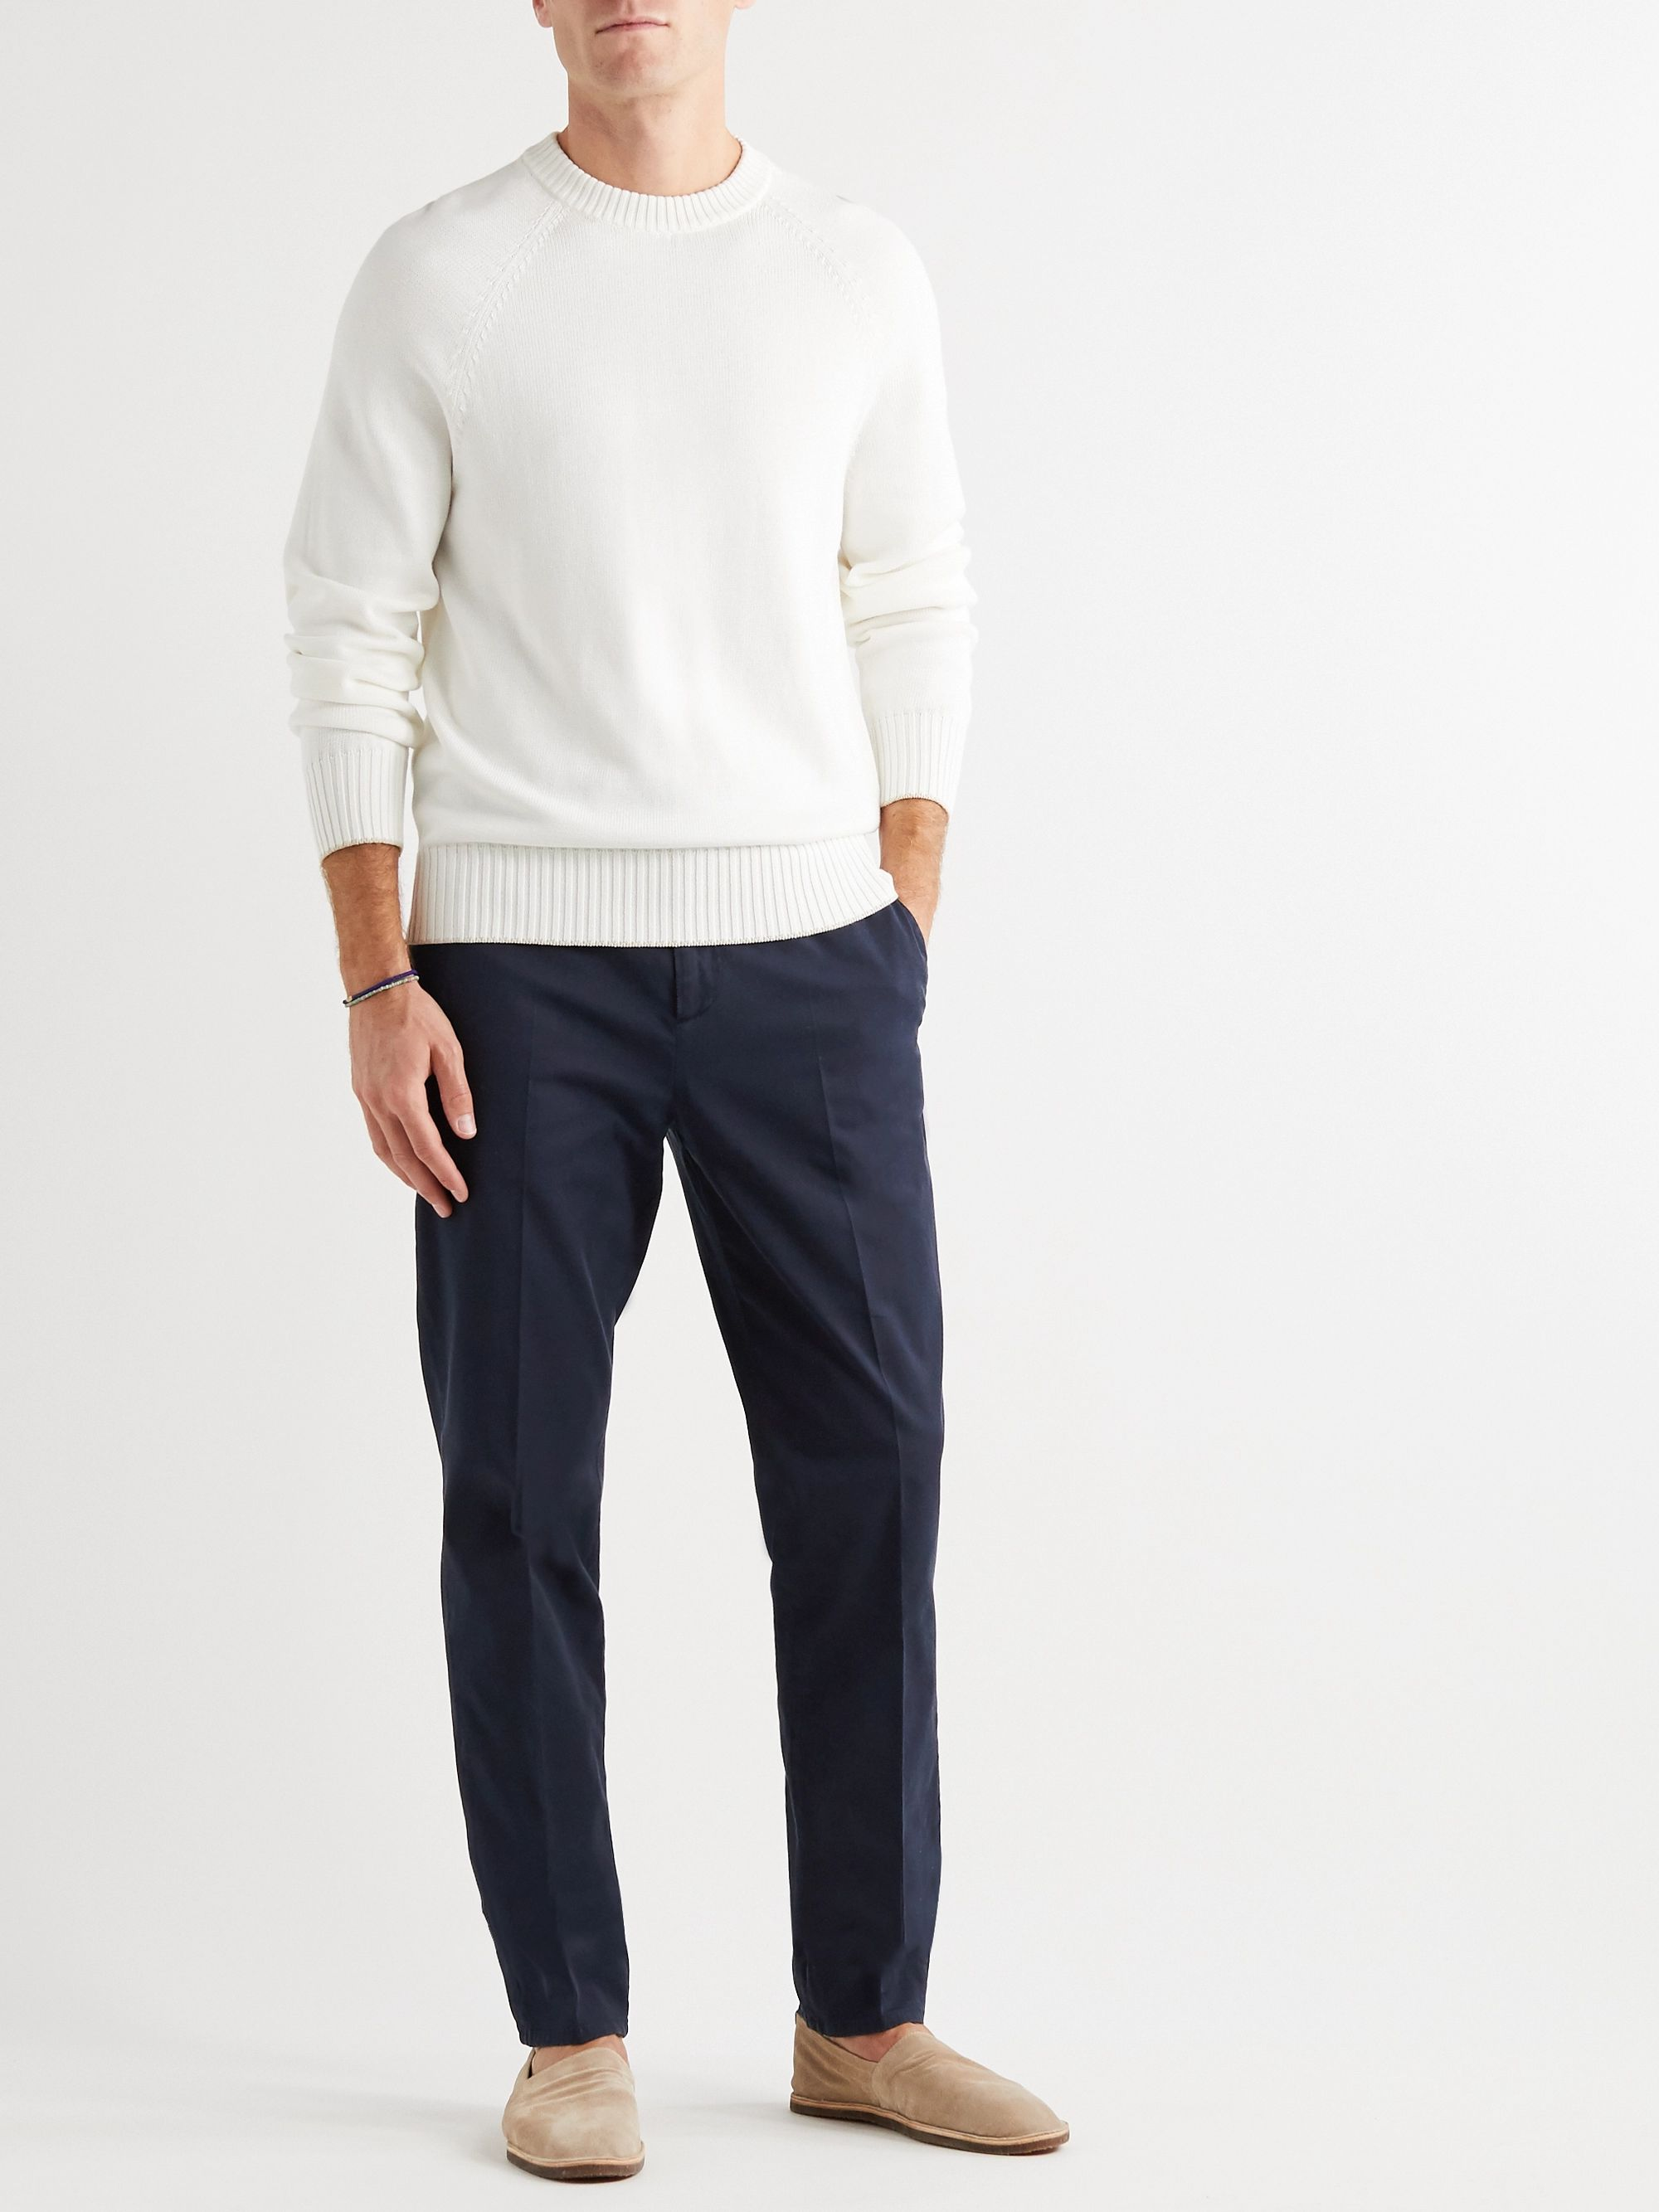 Brunello Cucinelli Garment-Dyed Stretch Cotton-Twill Trousers